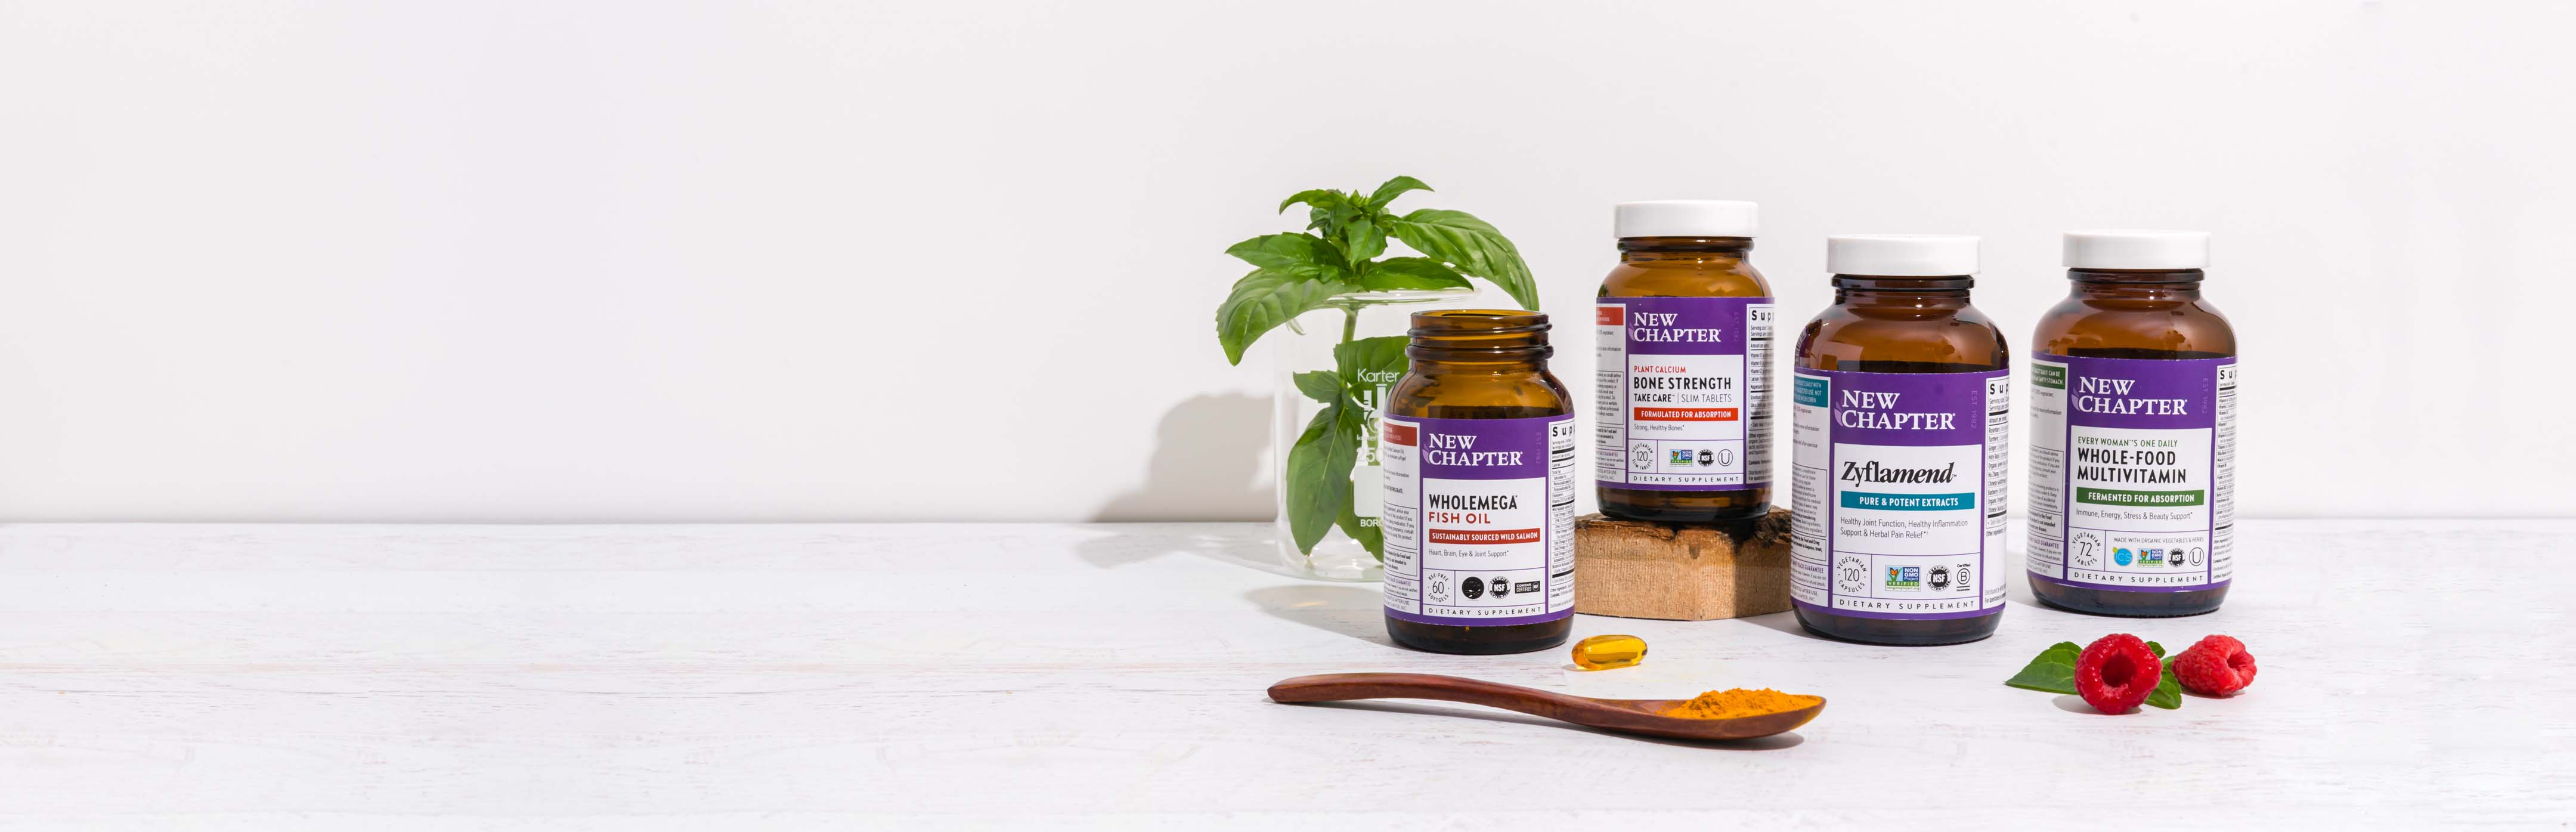 Collection of New Chapter's wellness products, including fermented vitamins and supplements